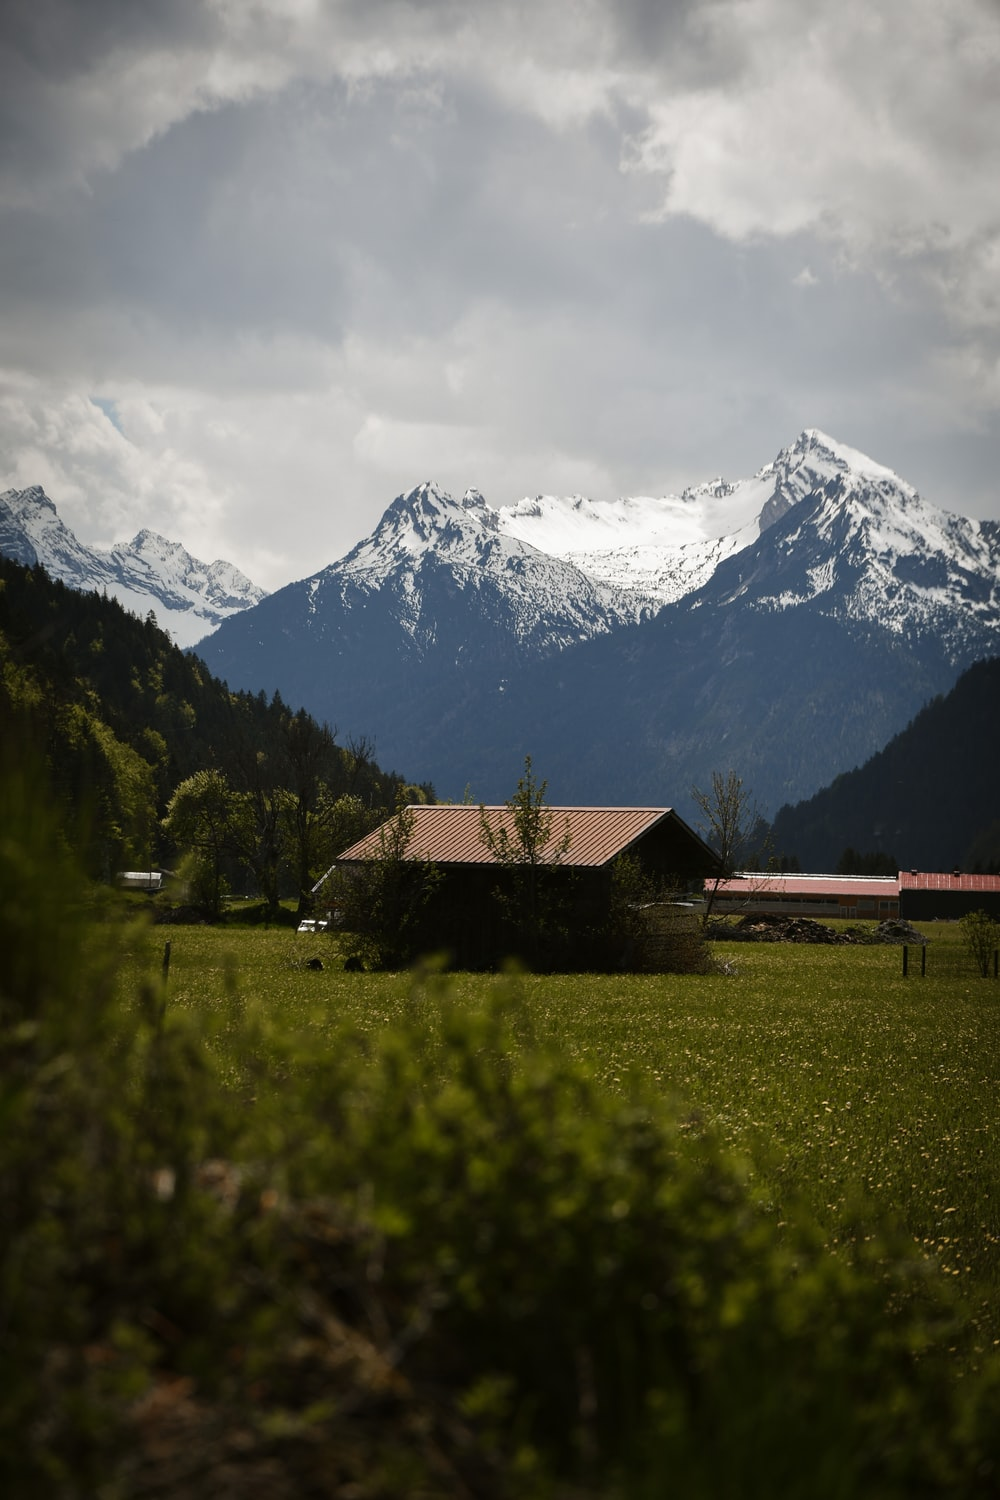 brown wooden house on green grass field near snow covered mountain during daytime